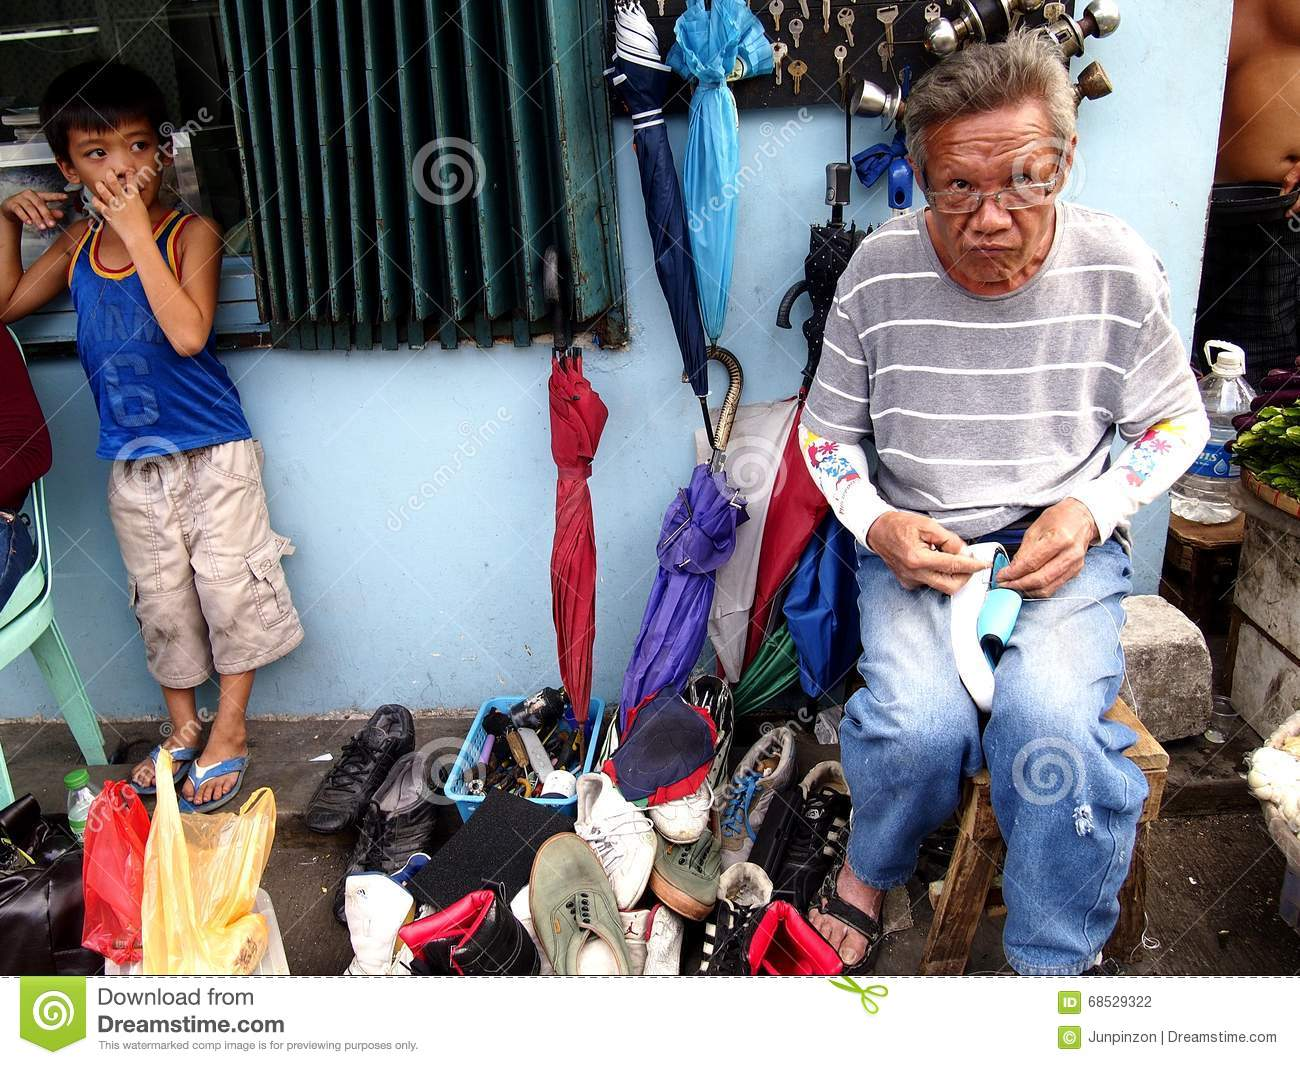 A shoemaker repairs a shoe for a customer along a street in Antipolo City, Philippines